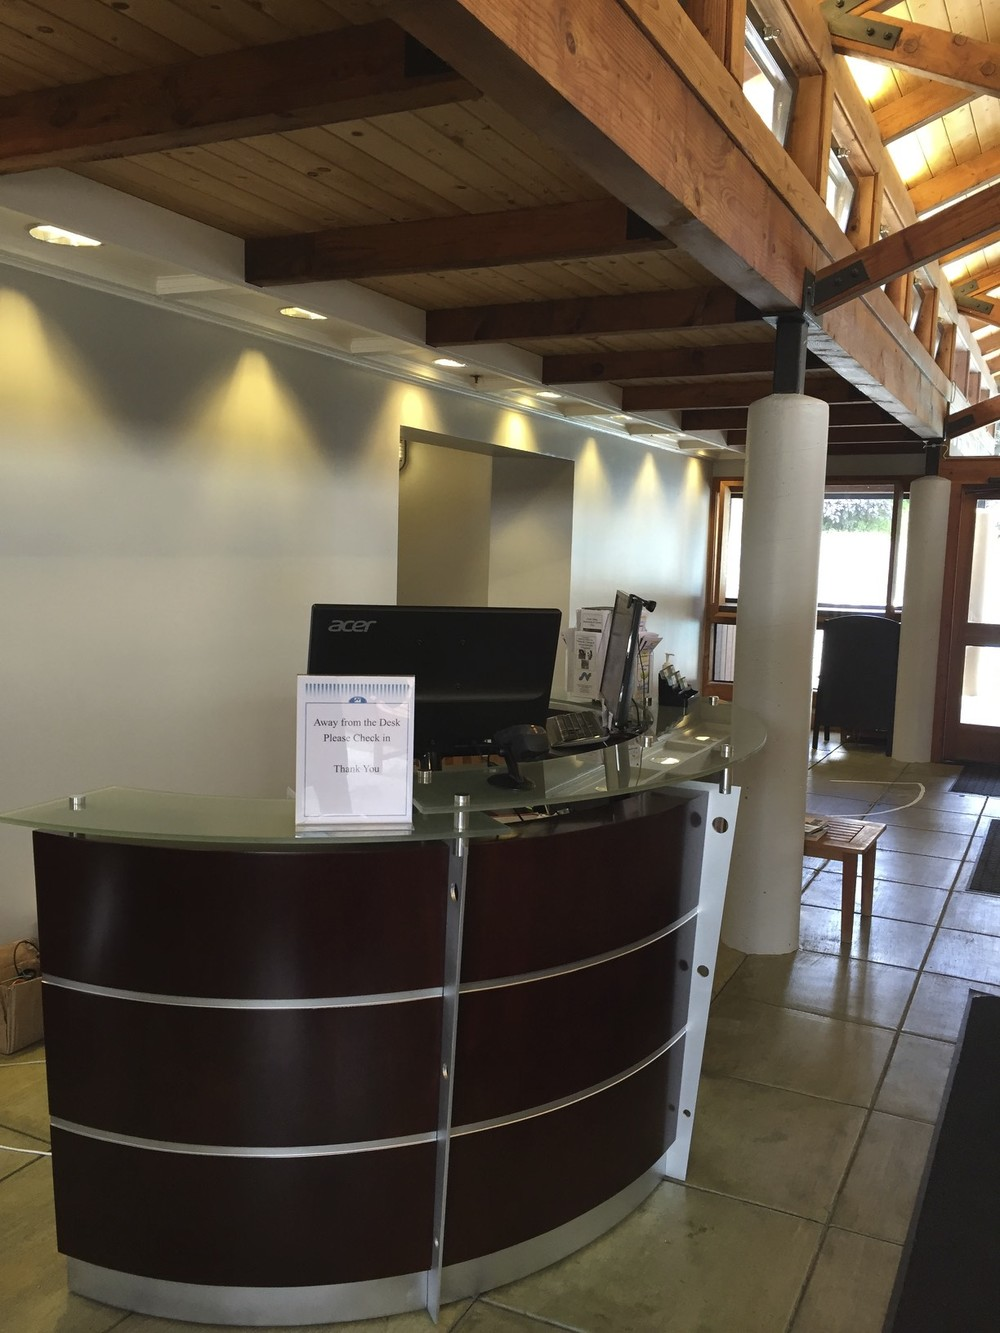 New Reception Desk is at the front of the entry to greet members.